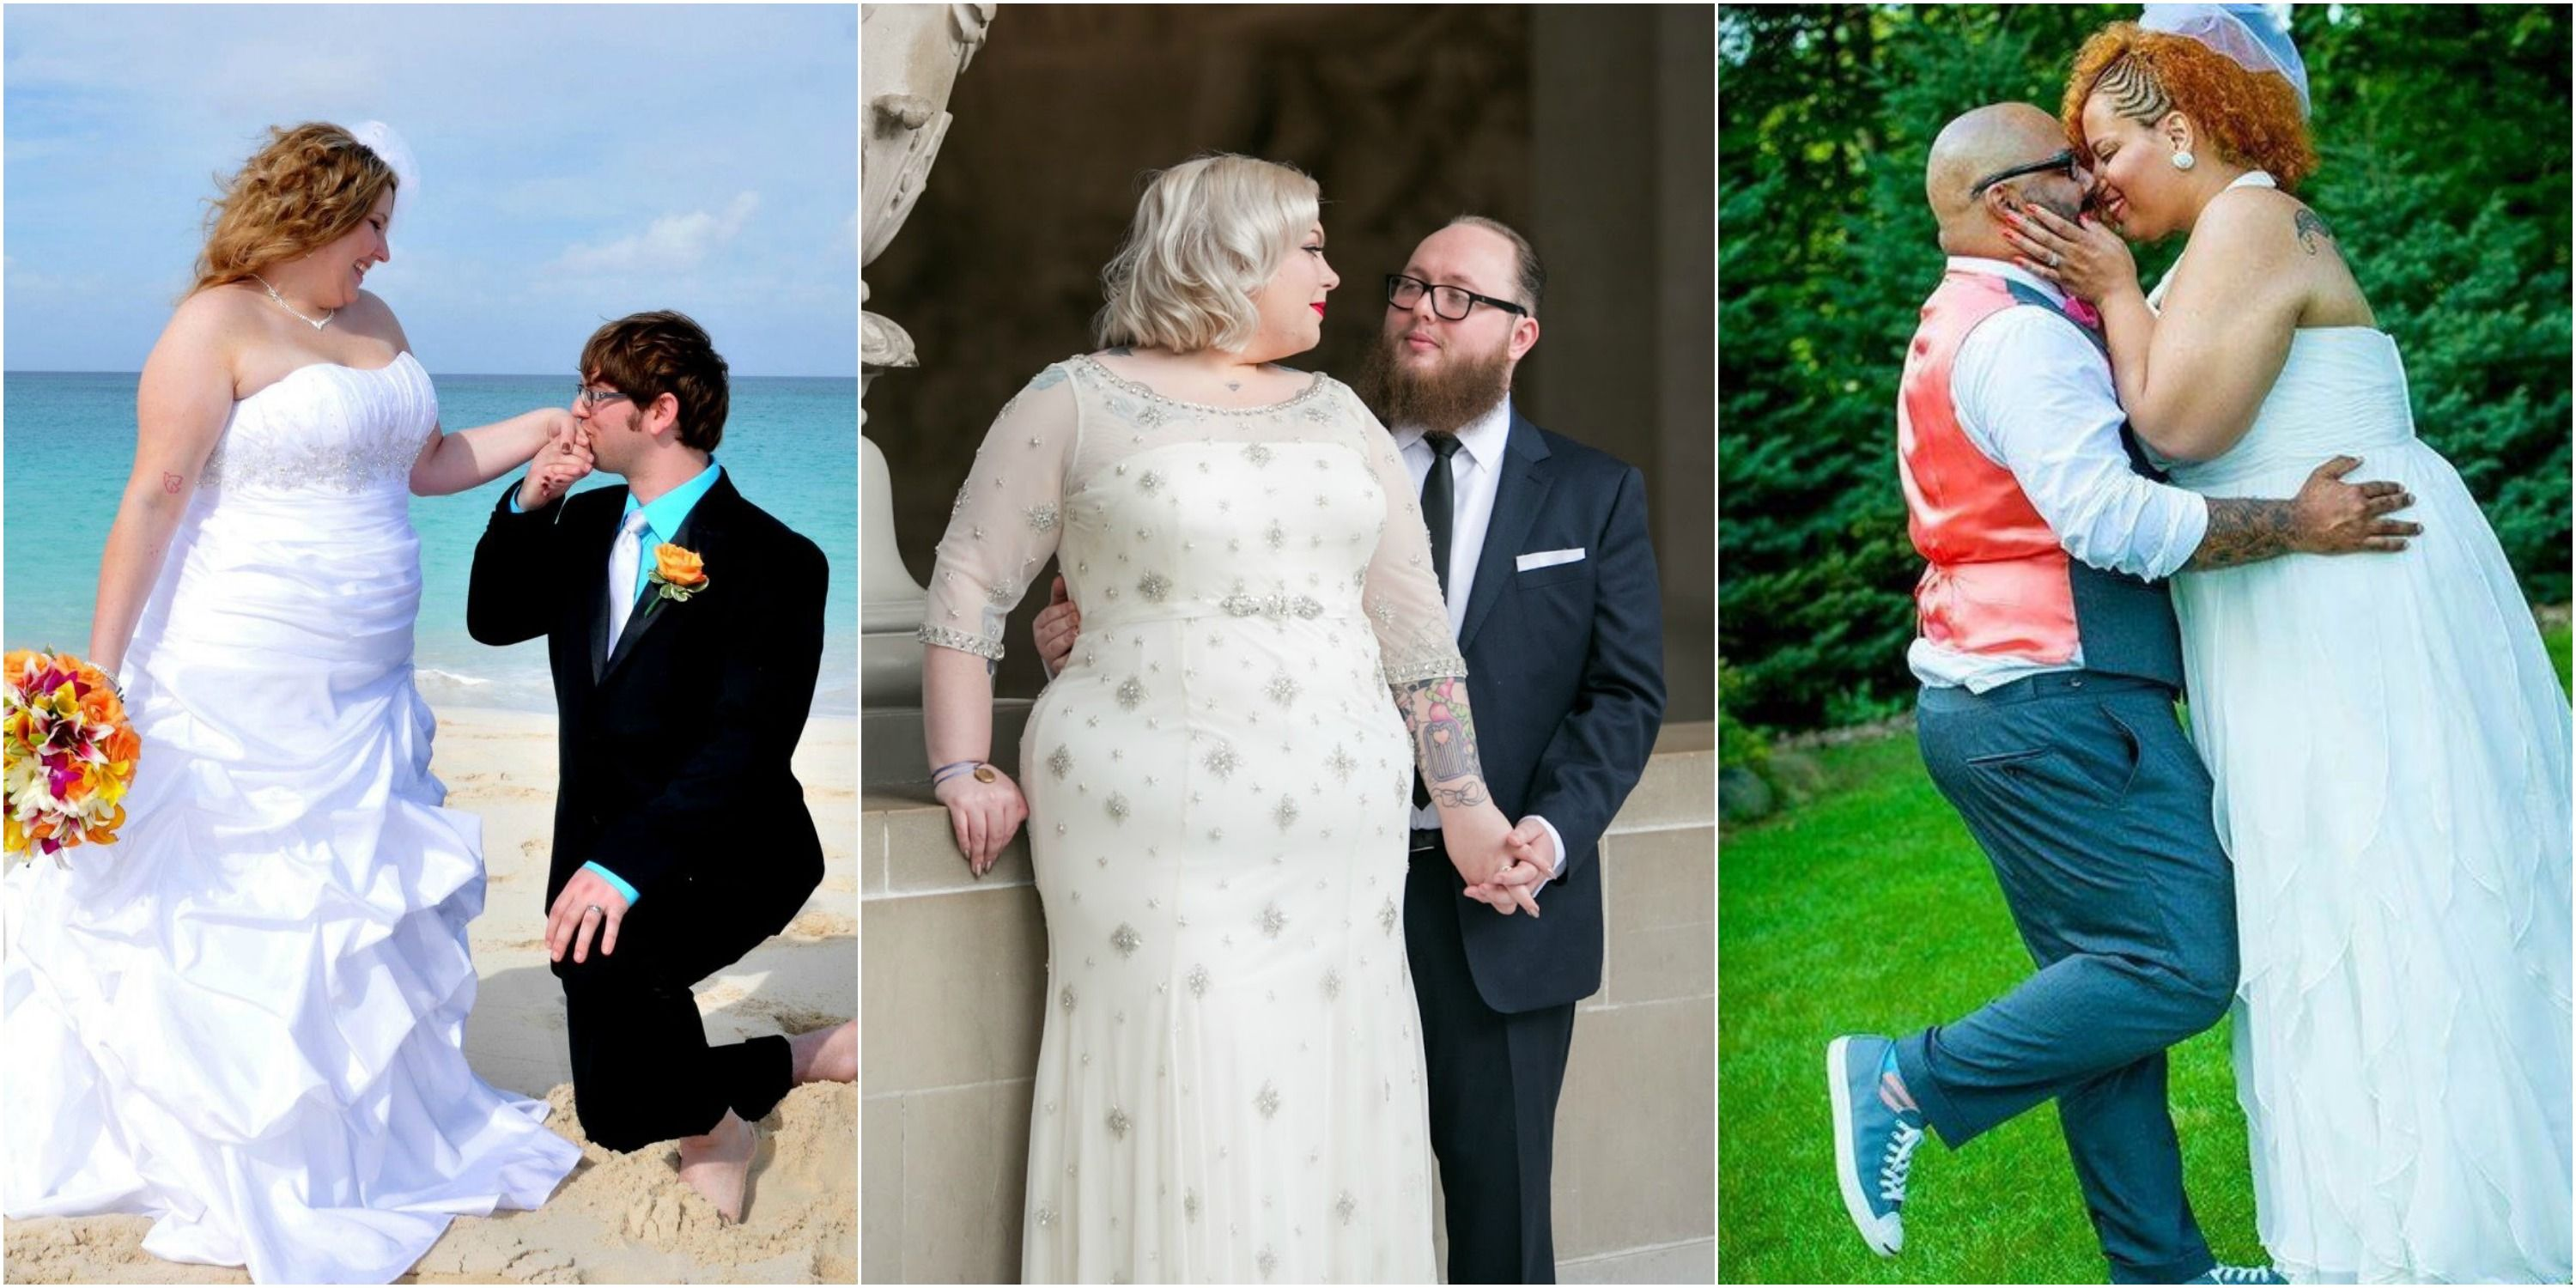 Blogger Makes Gallery of Plus-Size Brides in Wedding Dresses ...